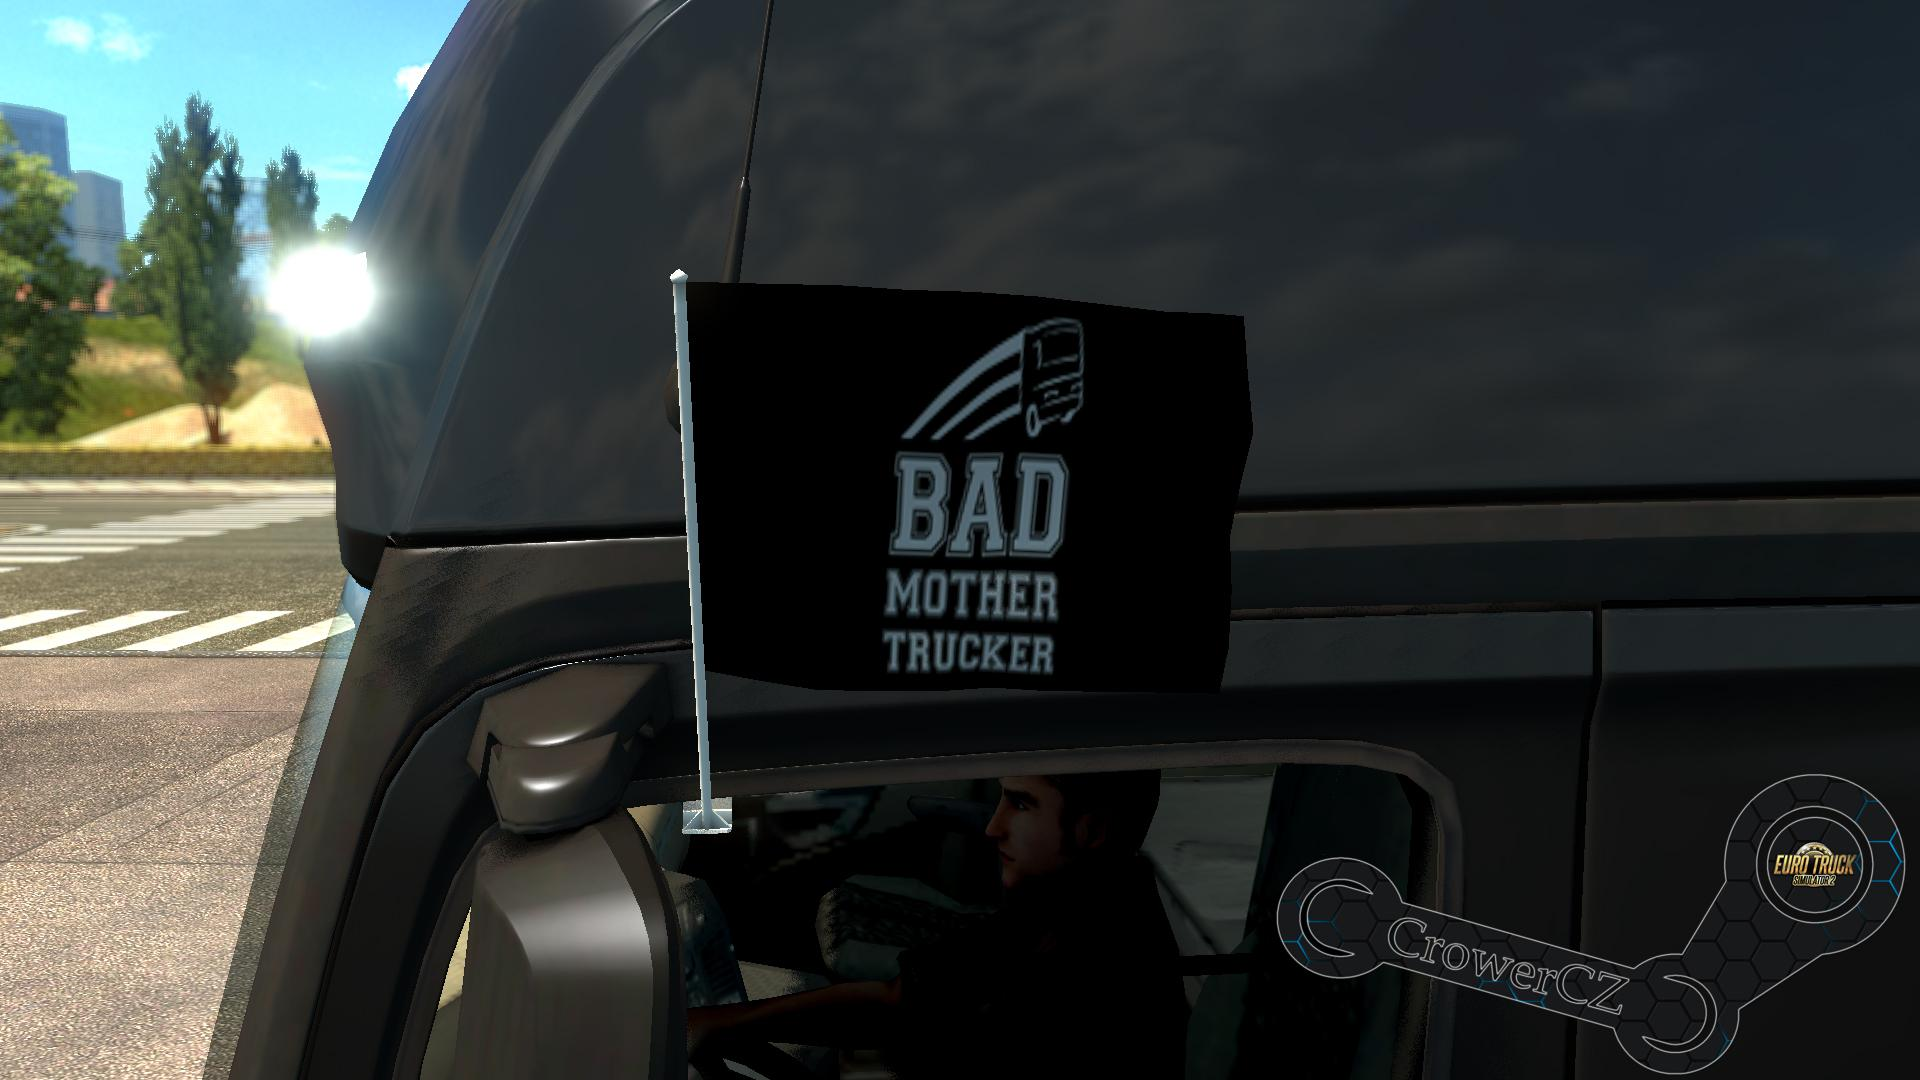 Bad Mother Trucker Flags by CrowerCZ